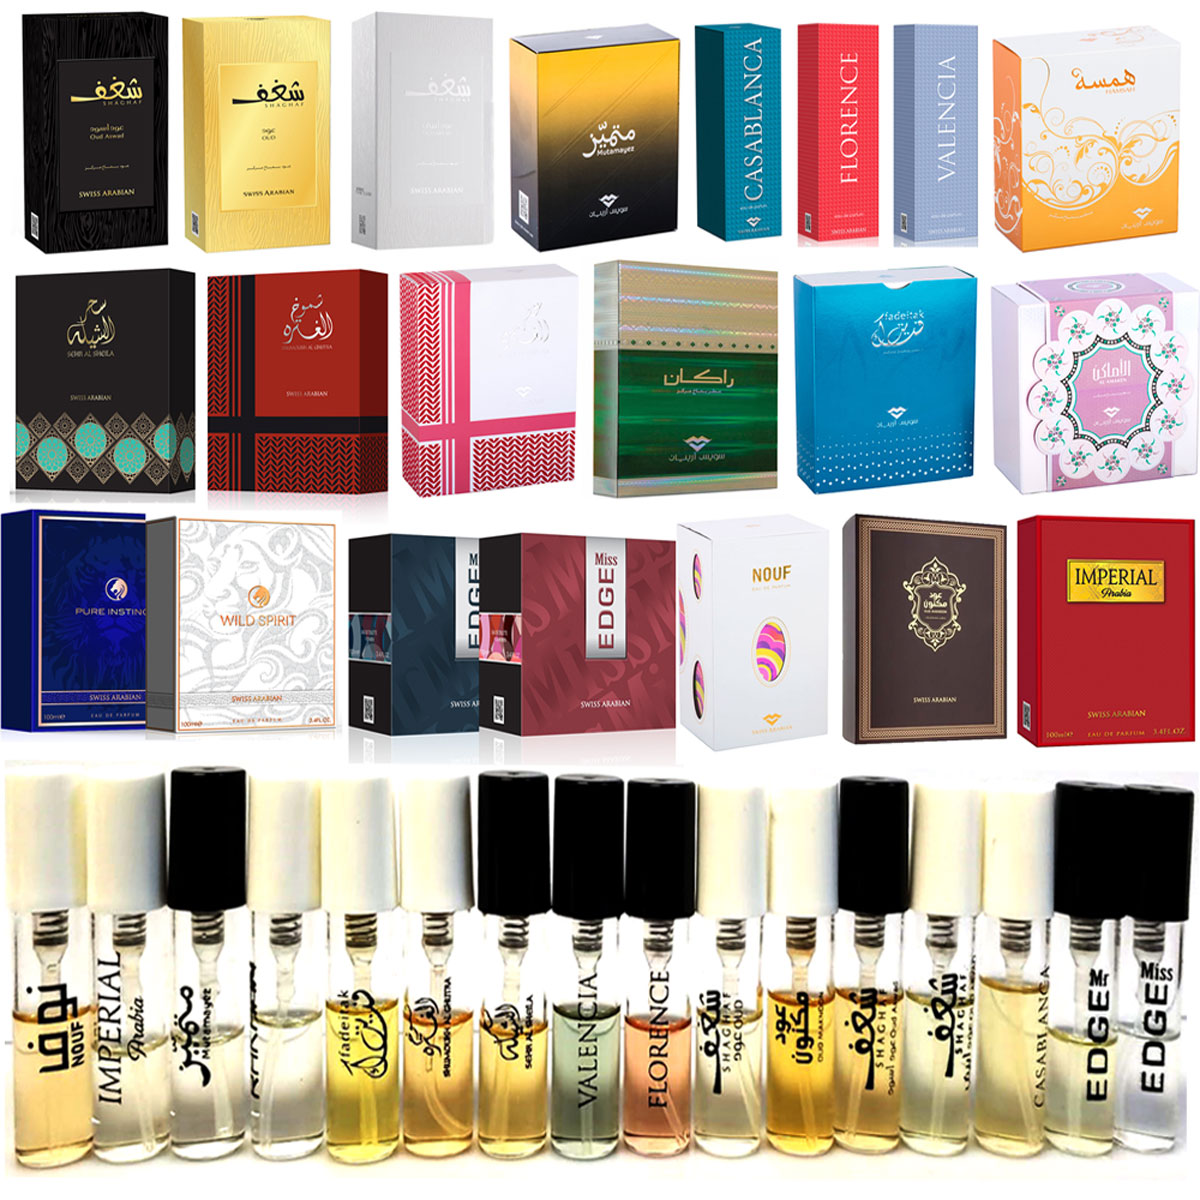 Swiss Arabian Perfume and Cologne Samples